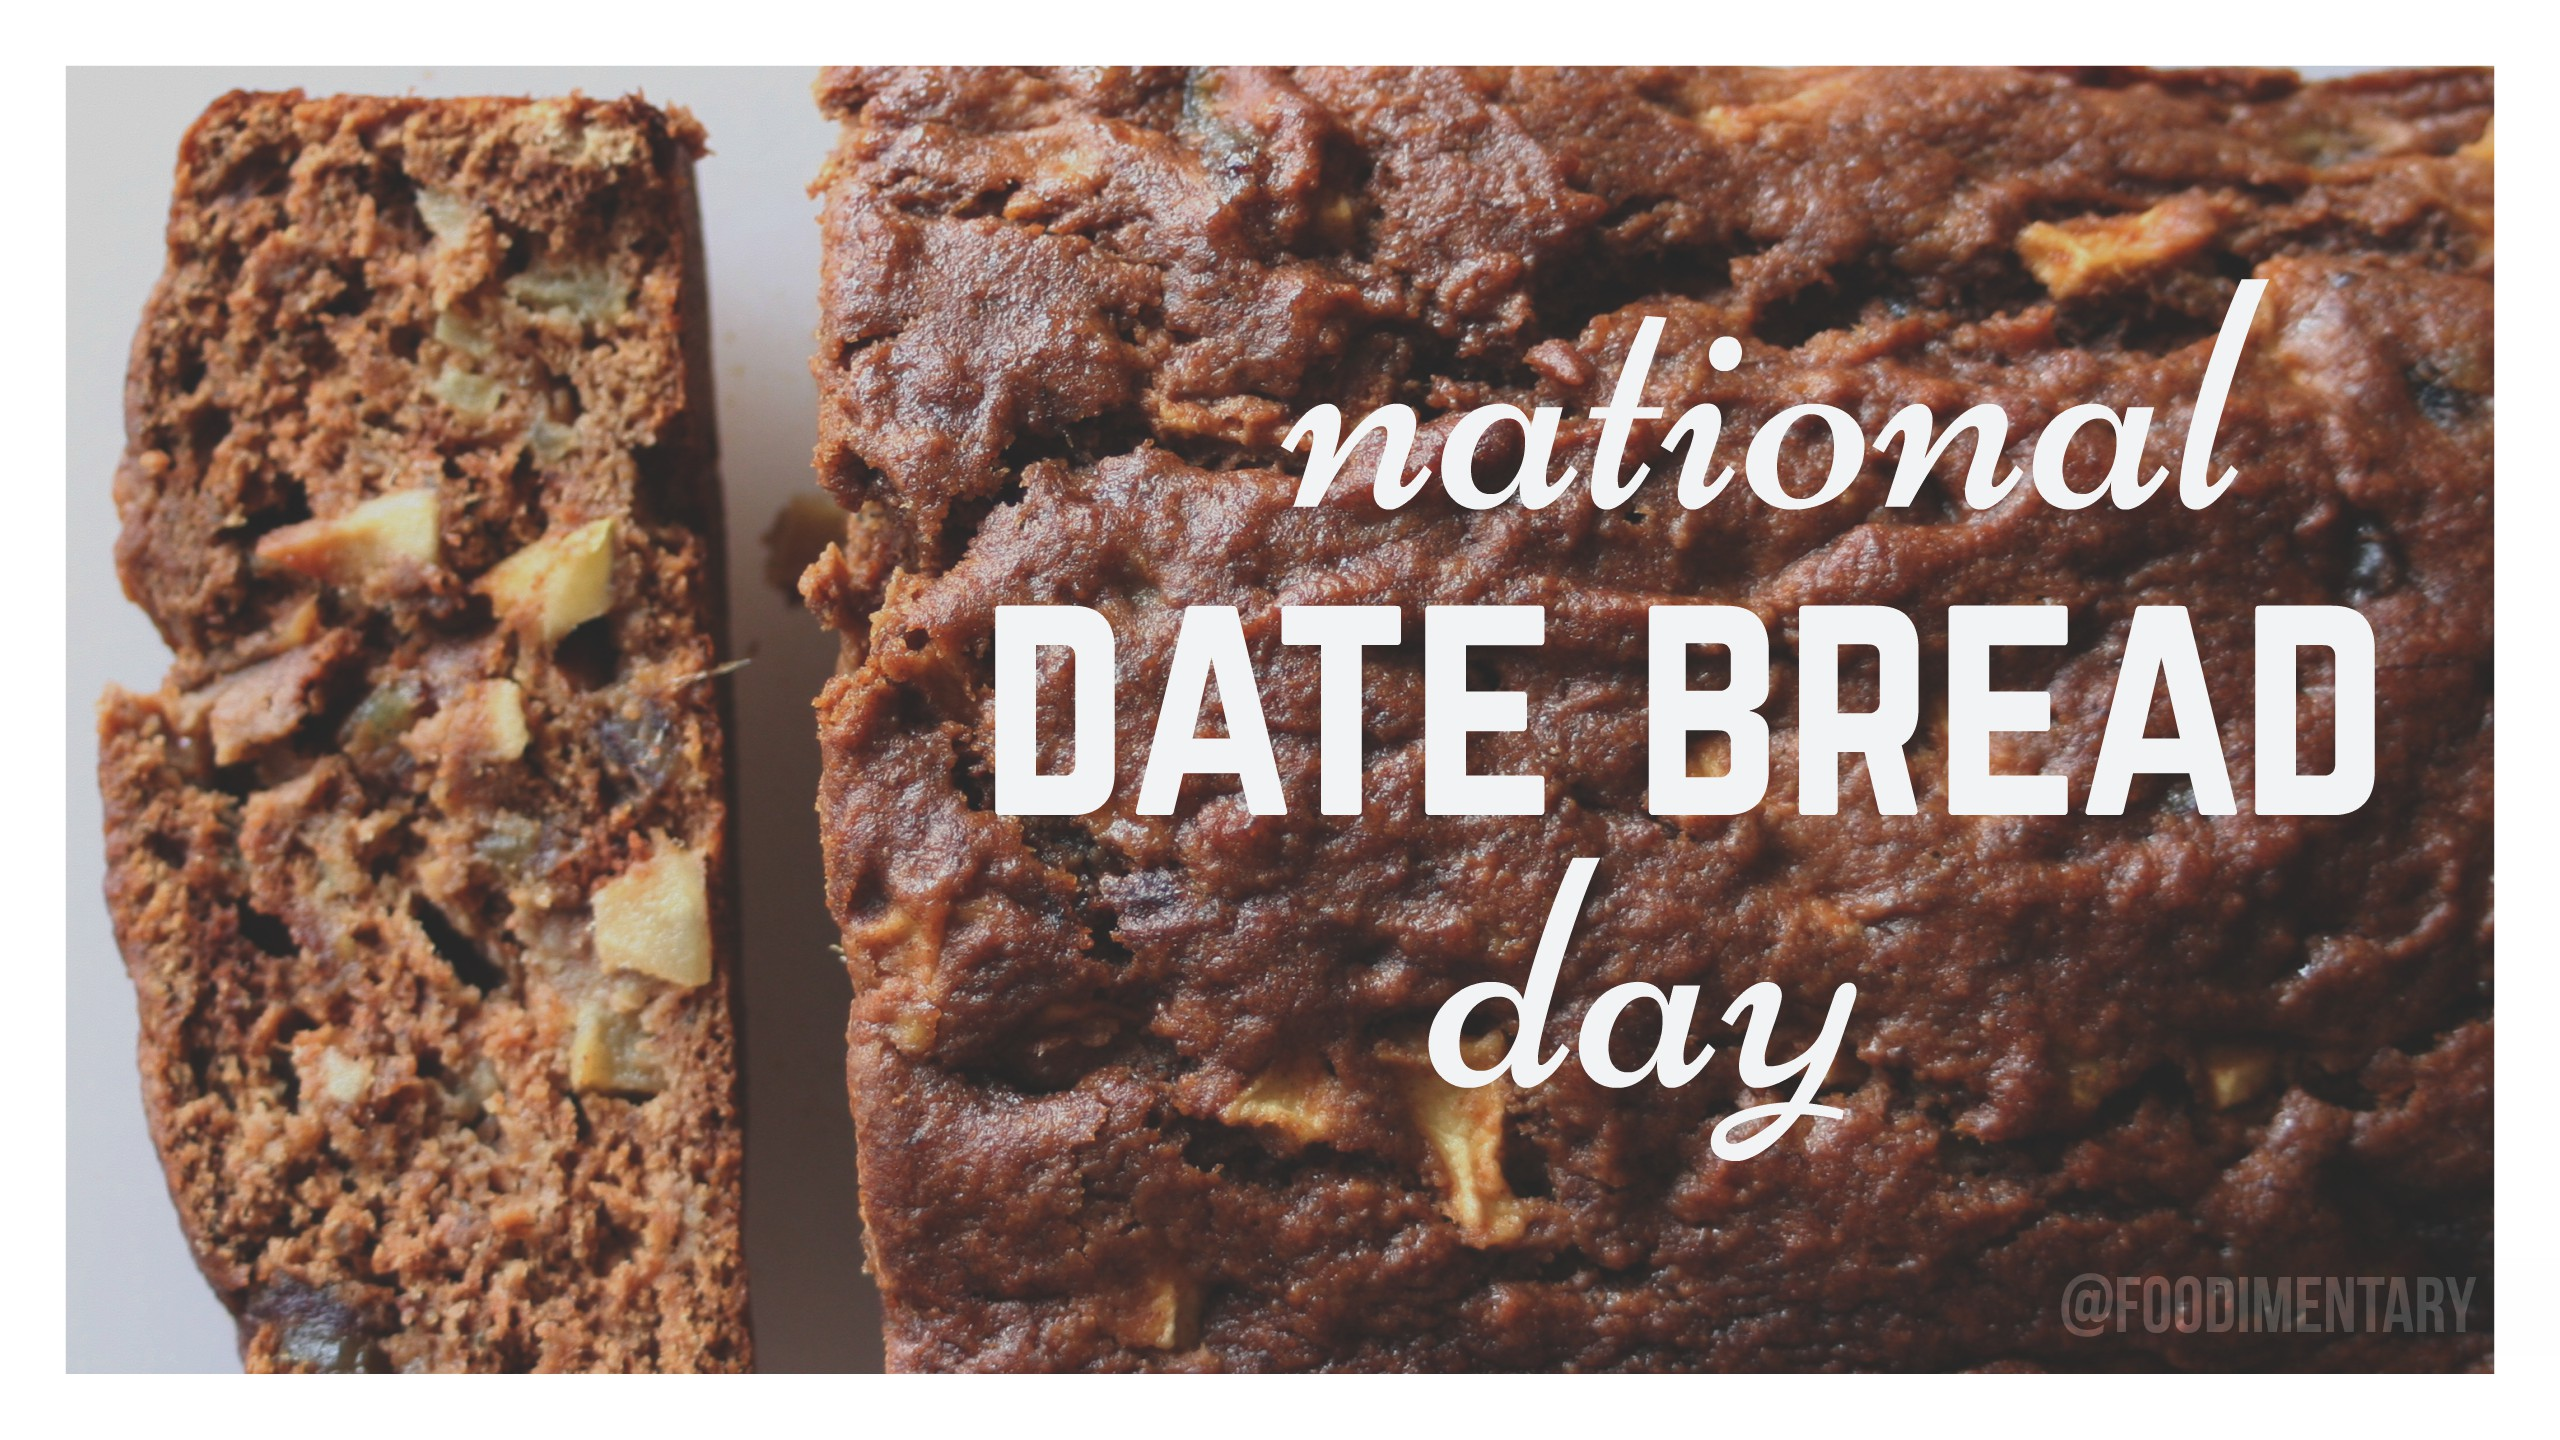 National dating day